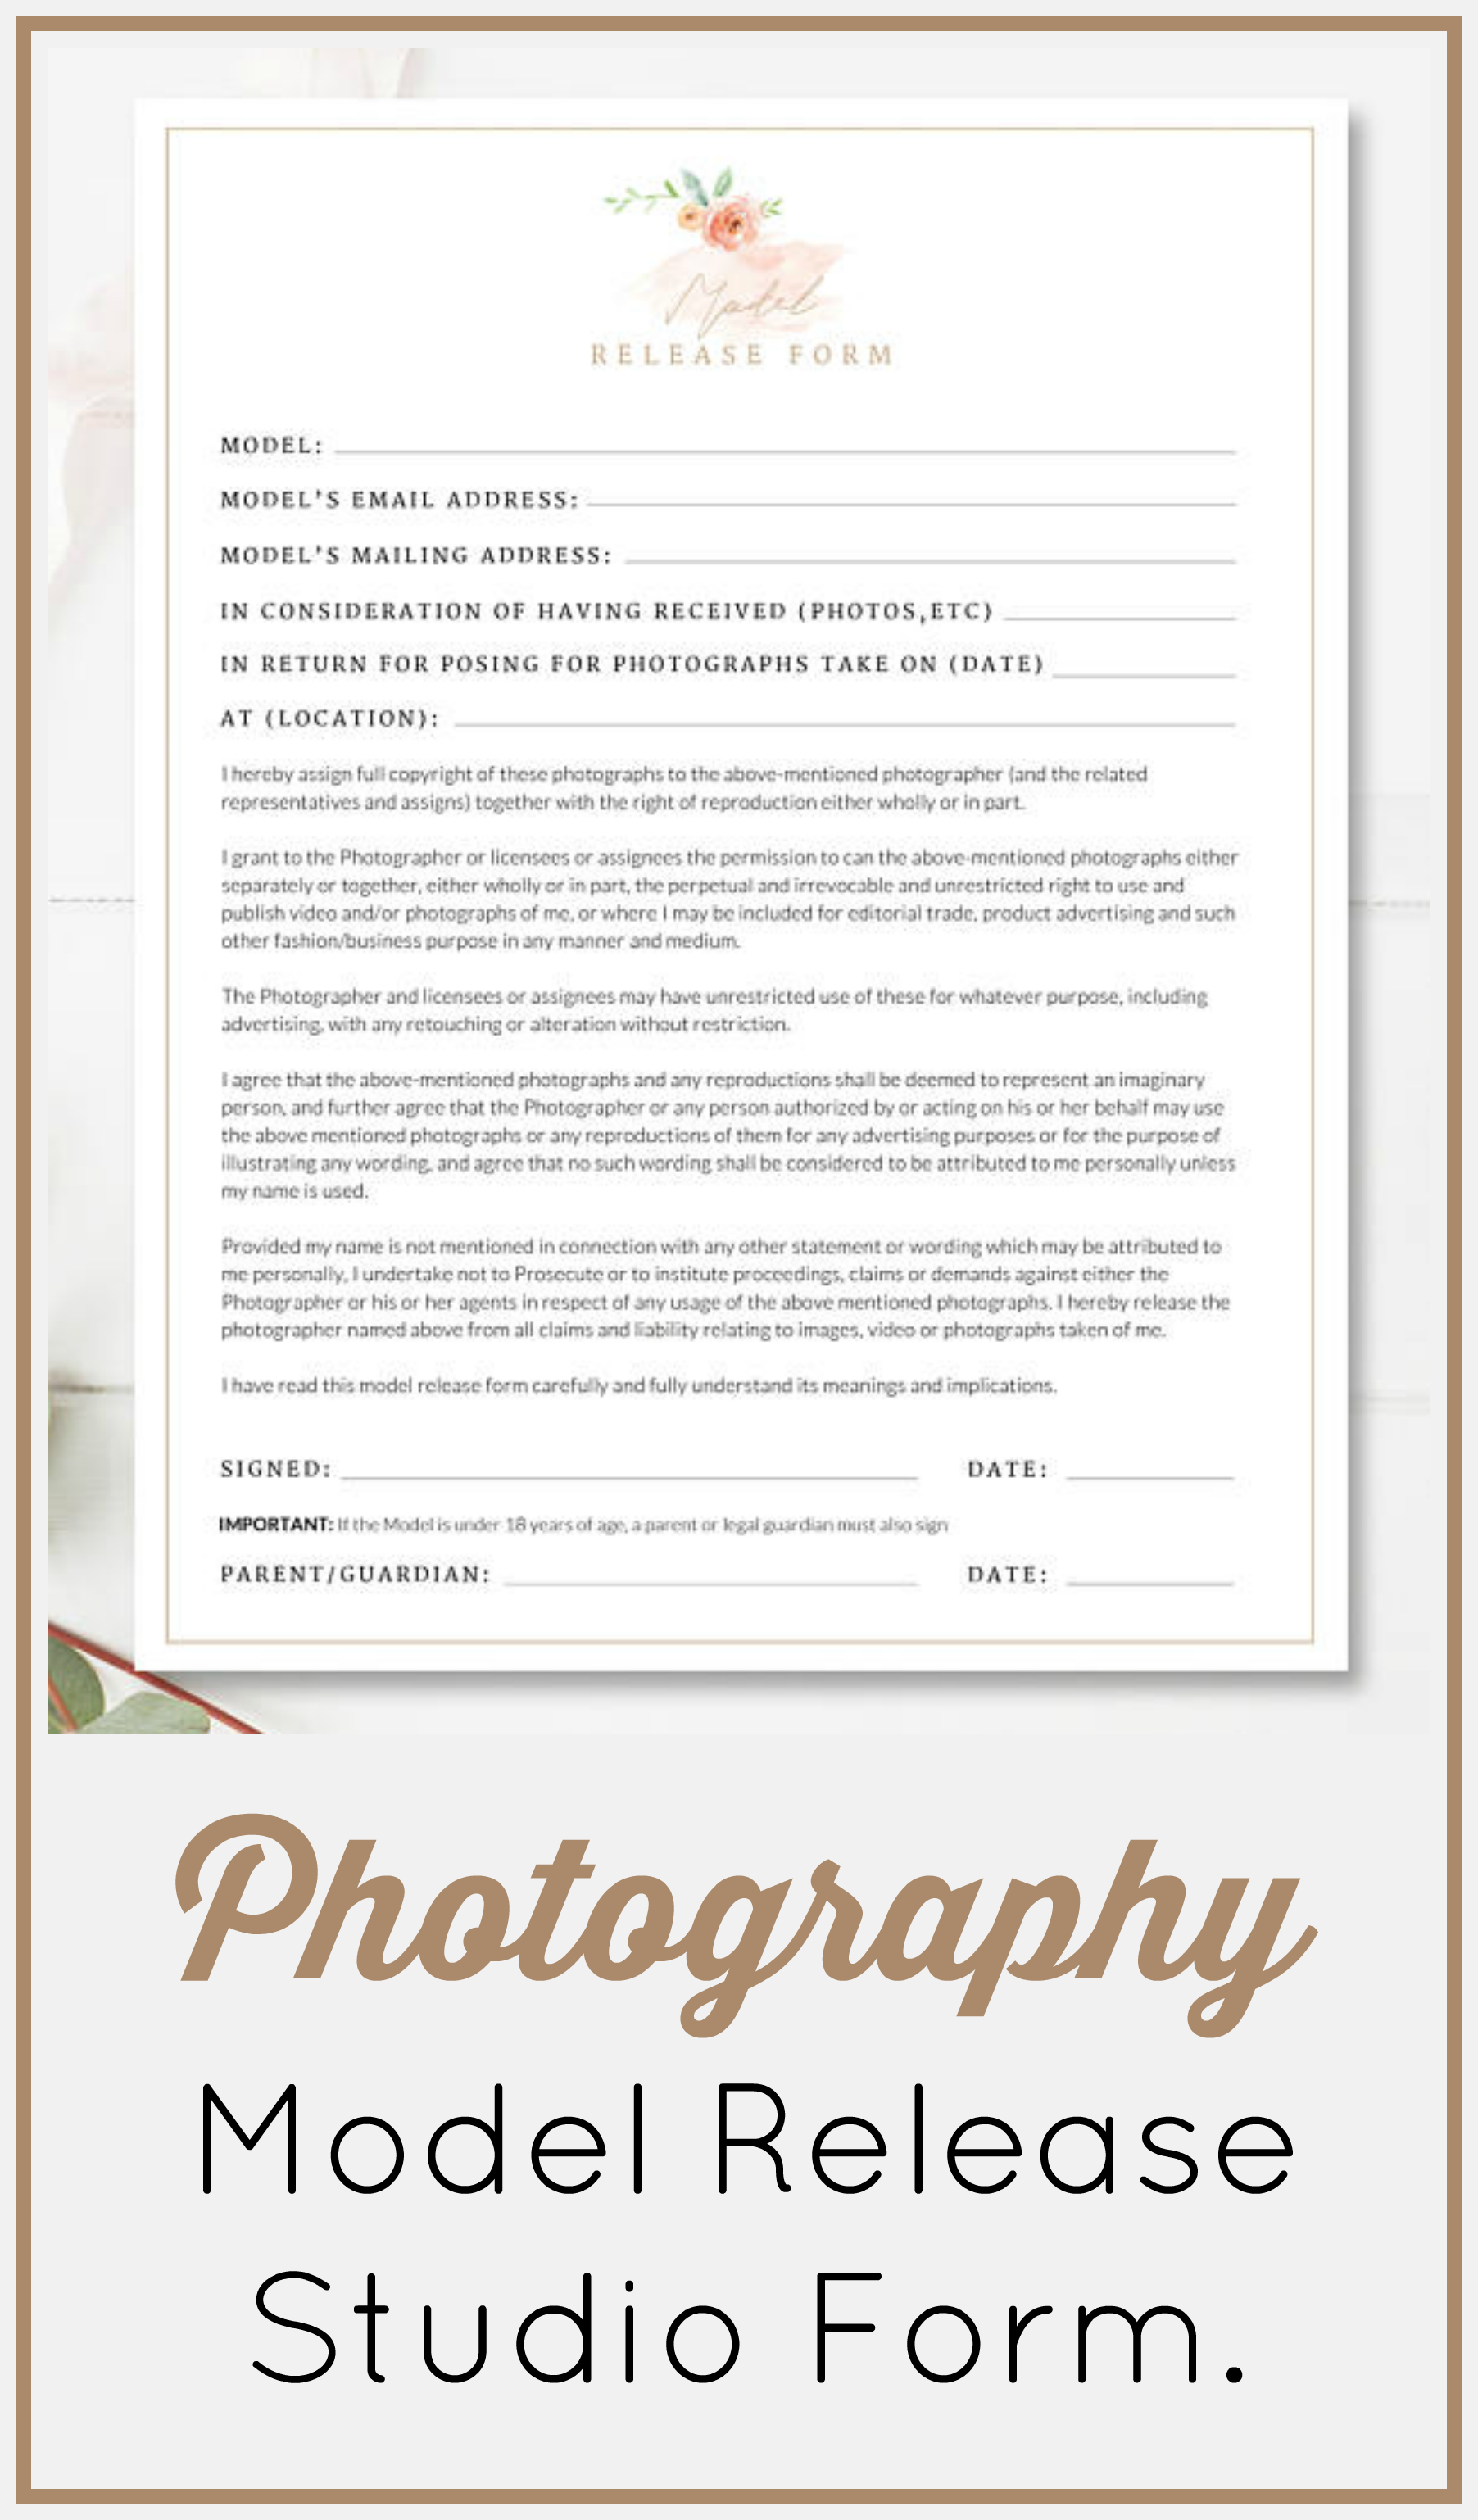 release form to use photos